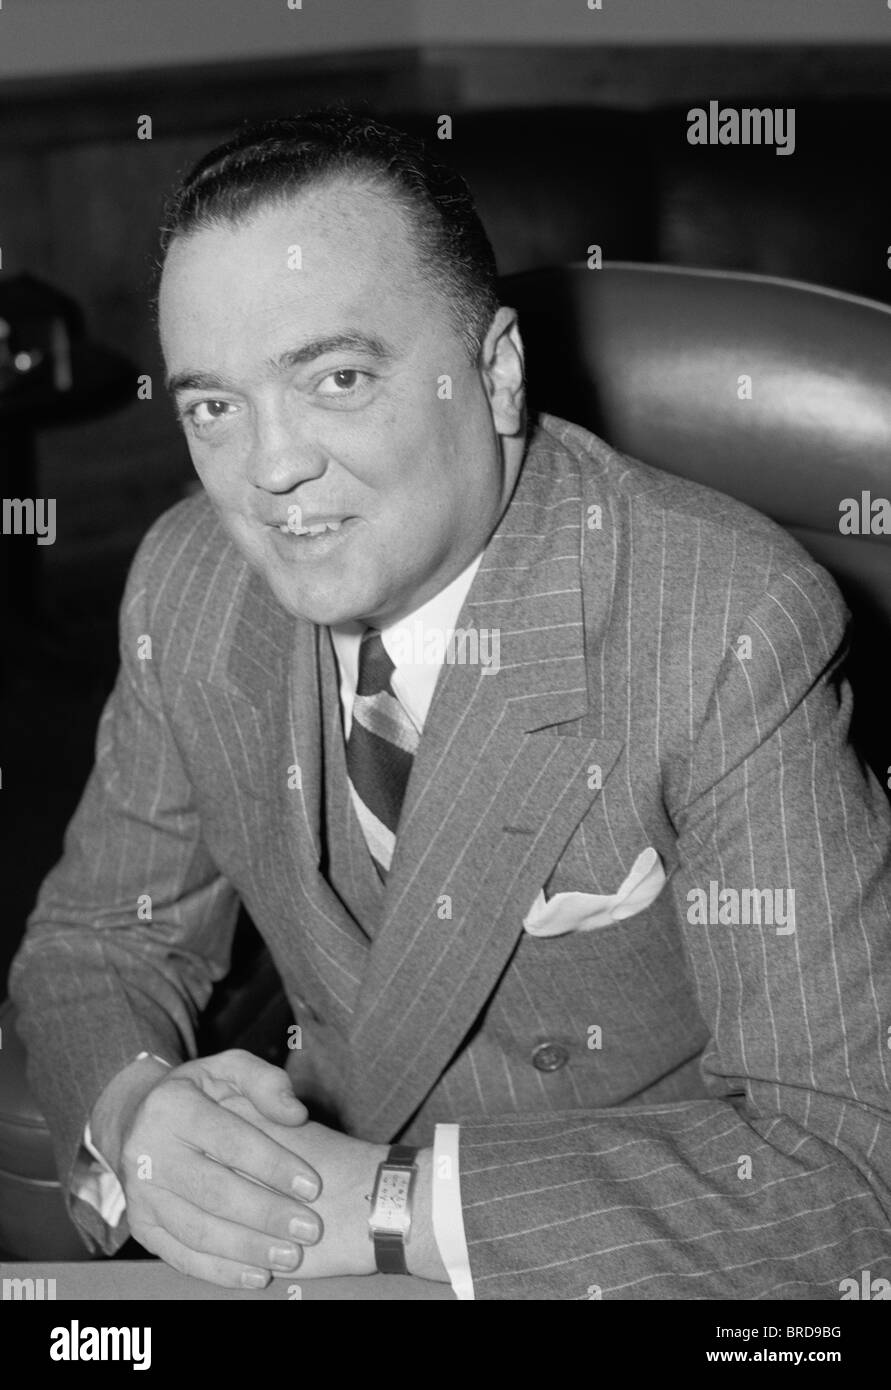 Portrait photo of J (John) Edgar Hoover (1895 - 1972) - the first Director of the Federal Bureau of Investigation - Stock Image